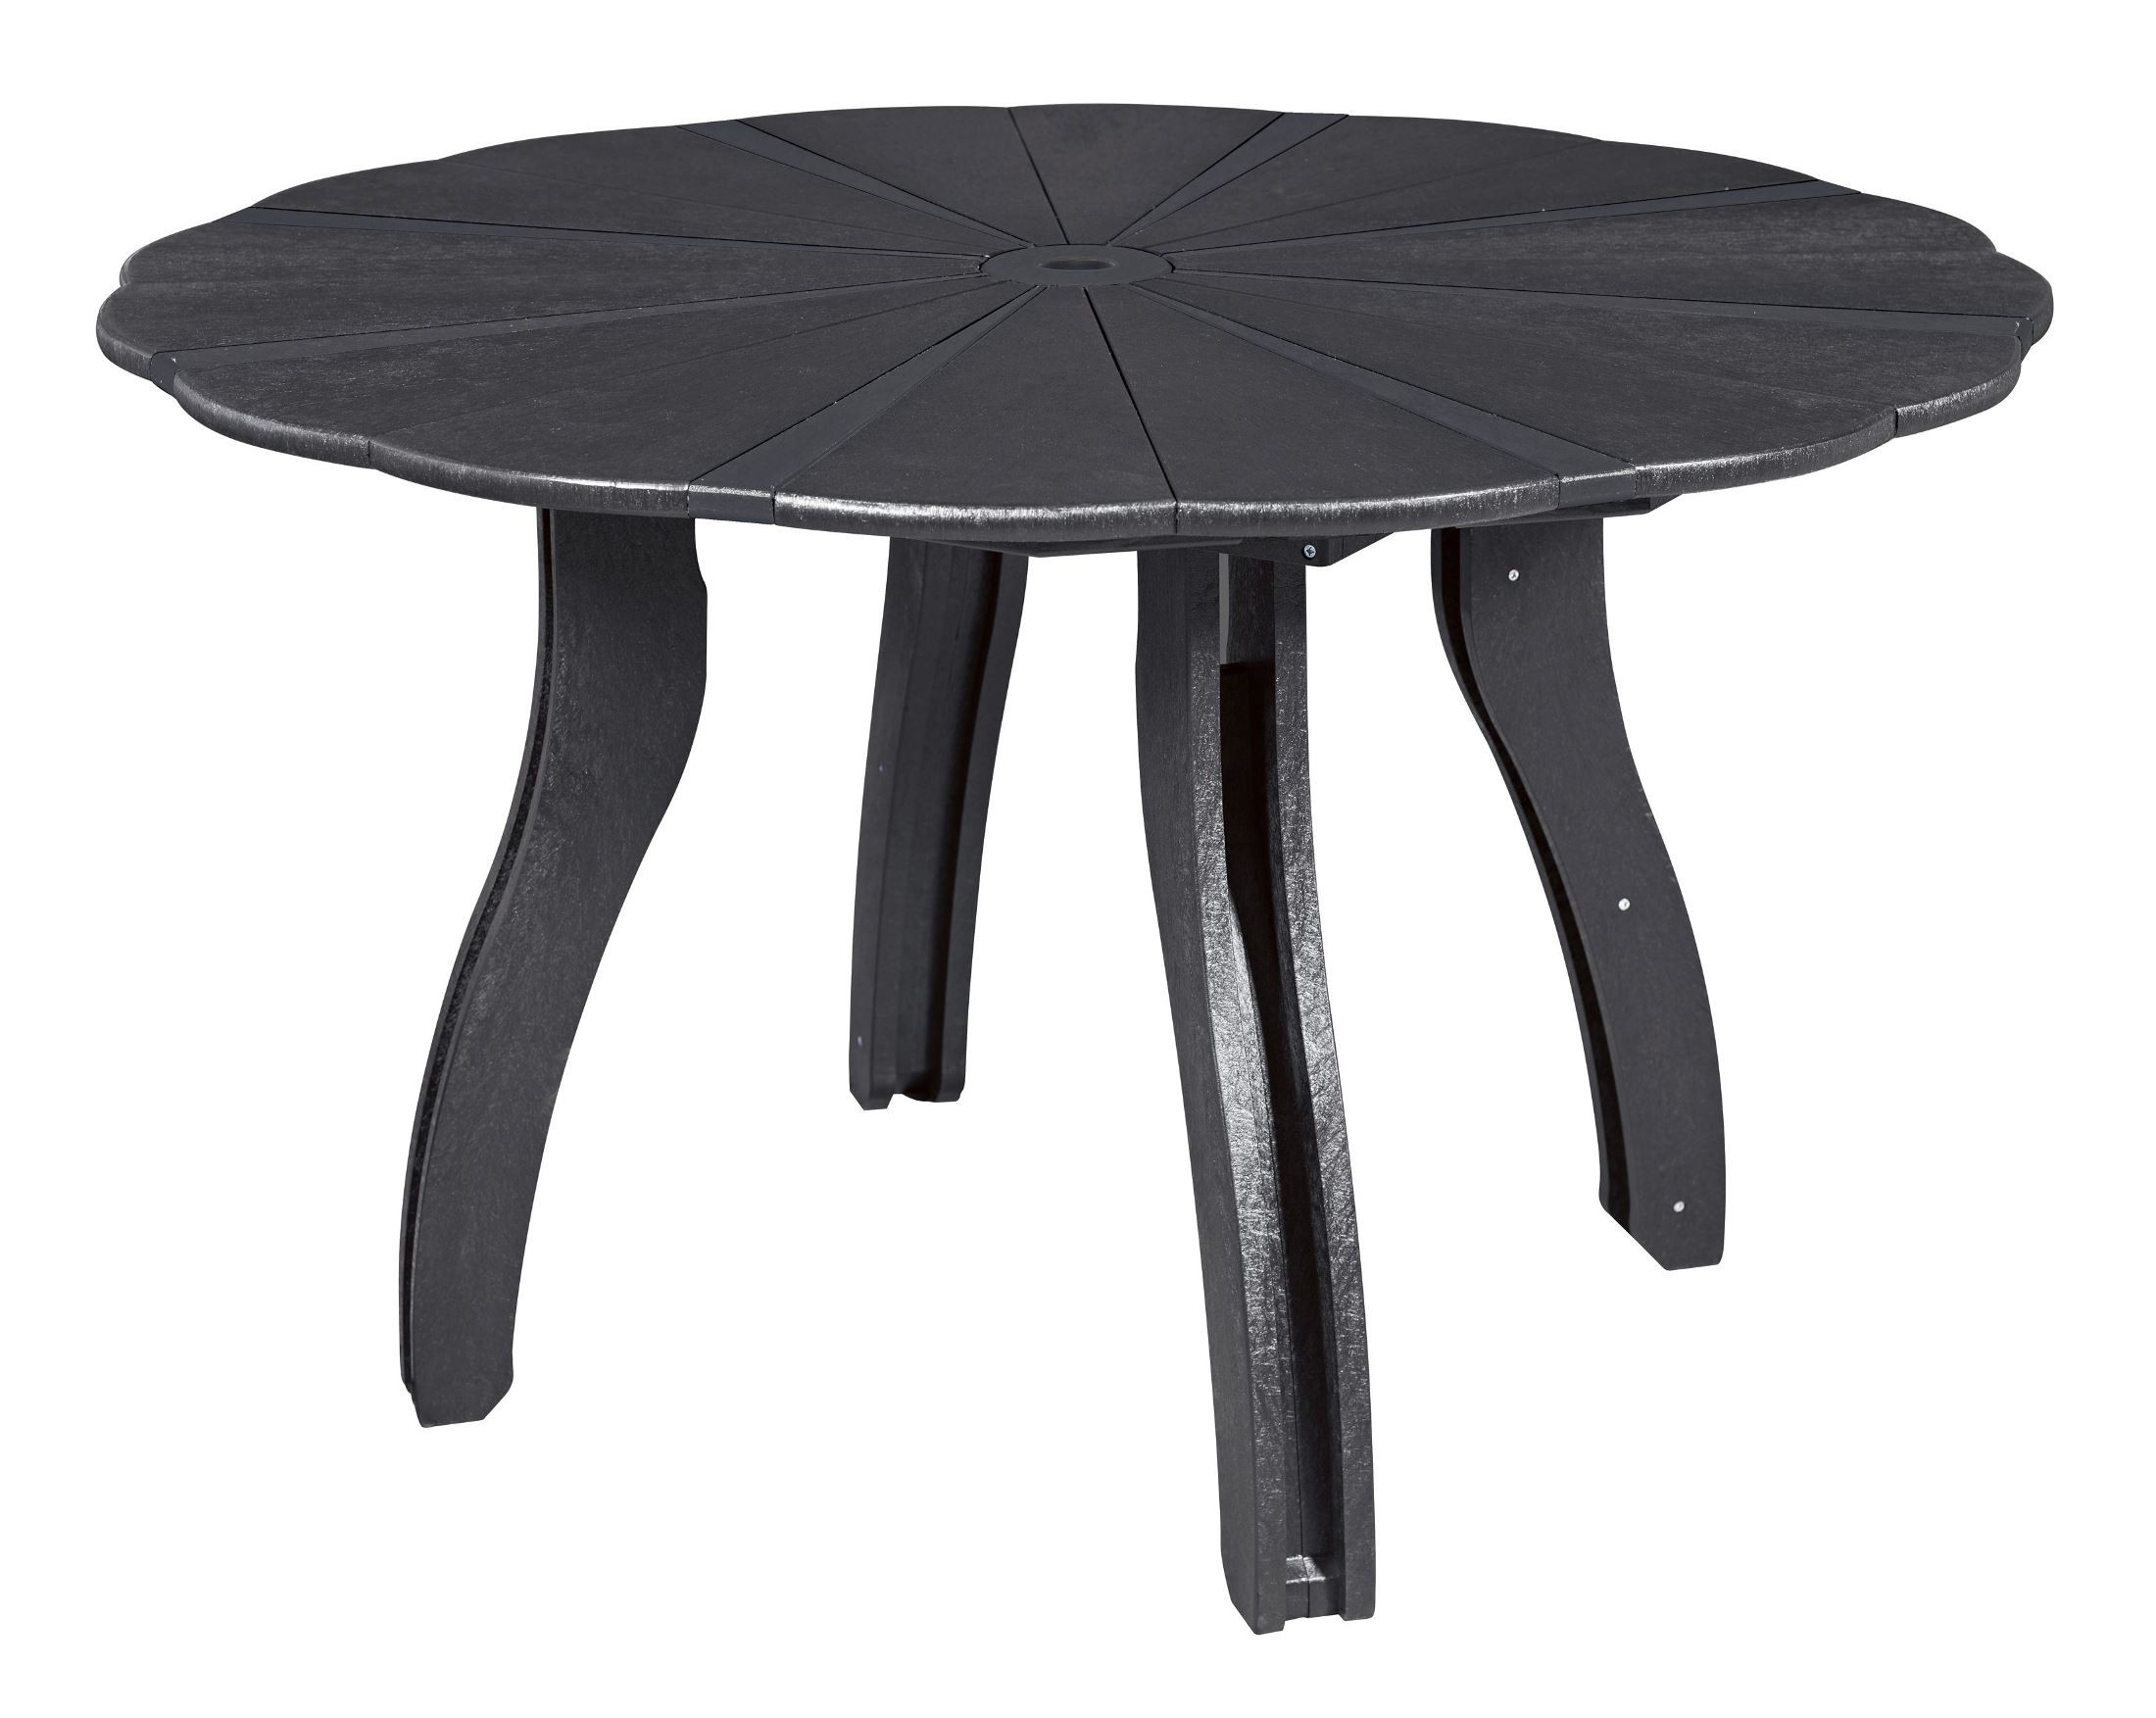 Generations black 52 scalloped round dining table from cr for Table 52 pictures